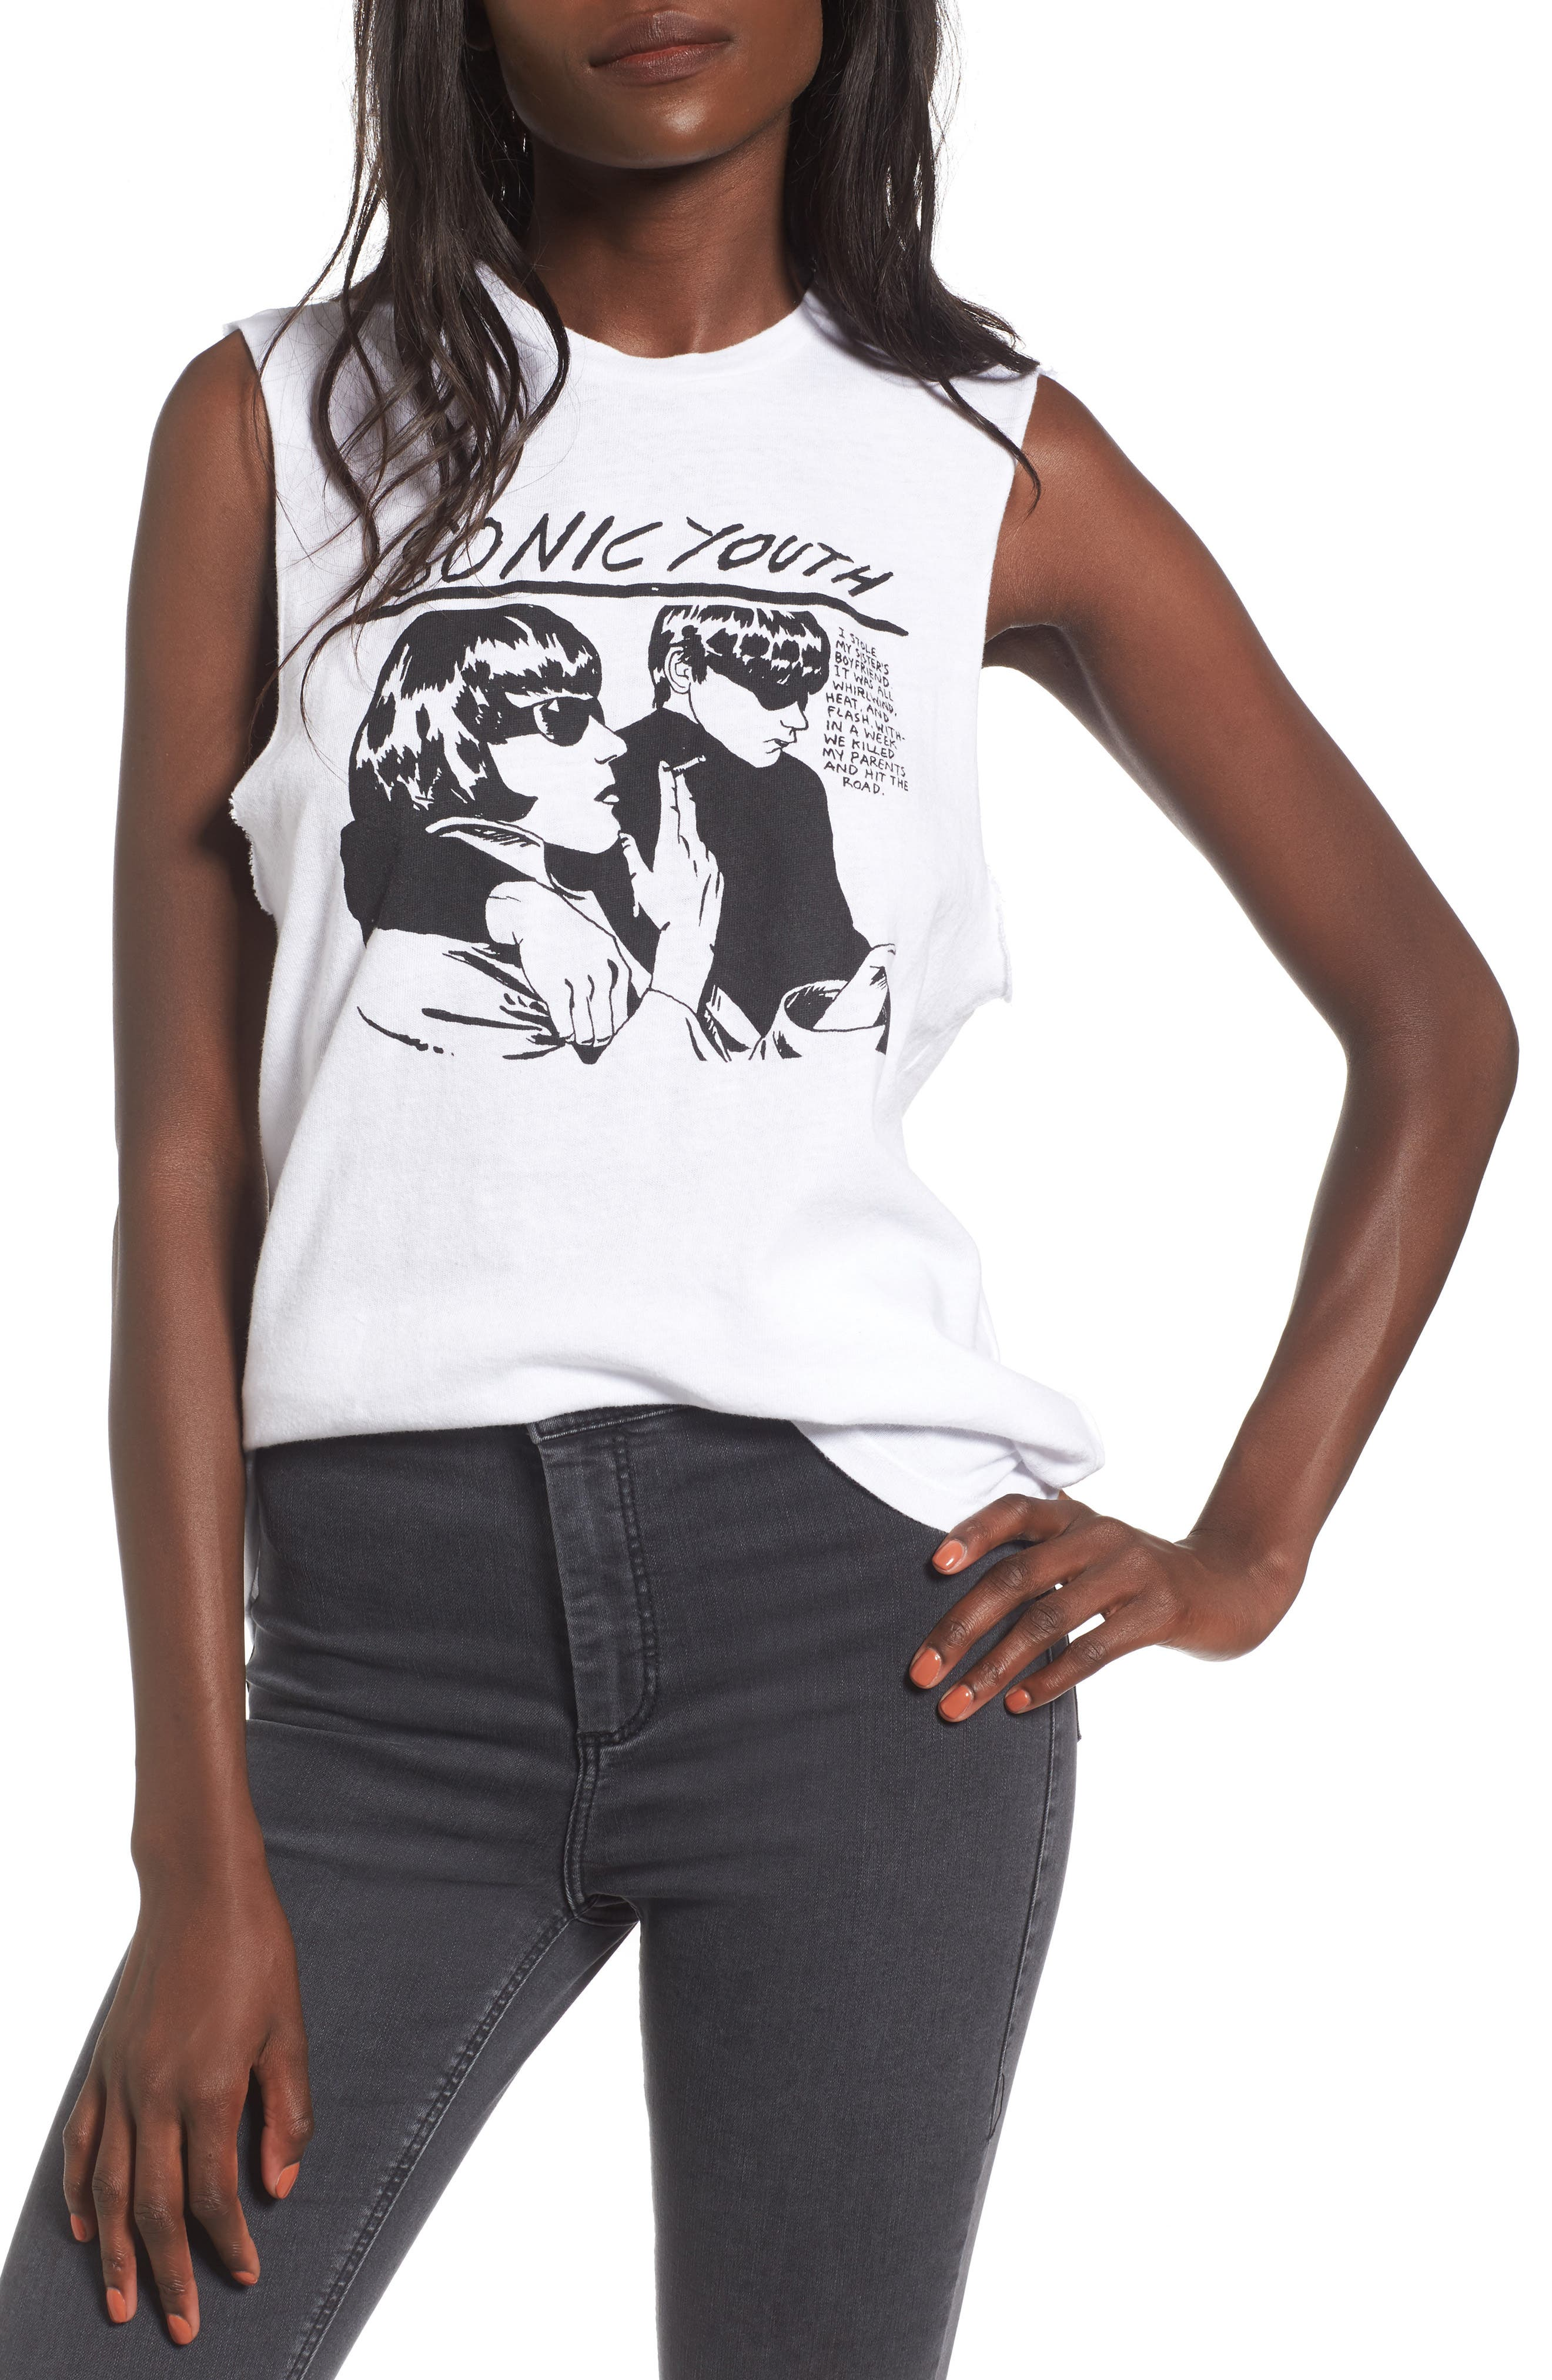 Topshop by And Finally Sonic Youth Graphic Tank